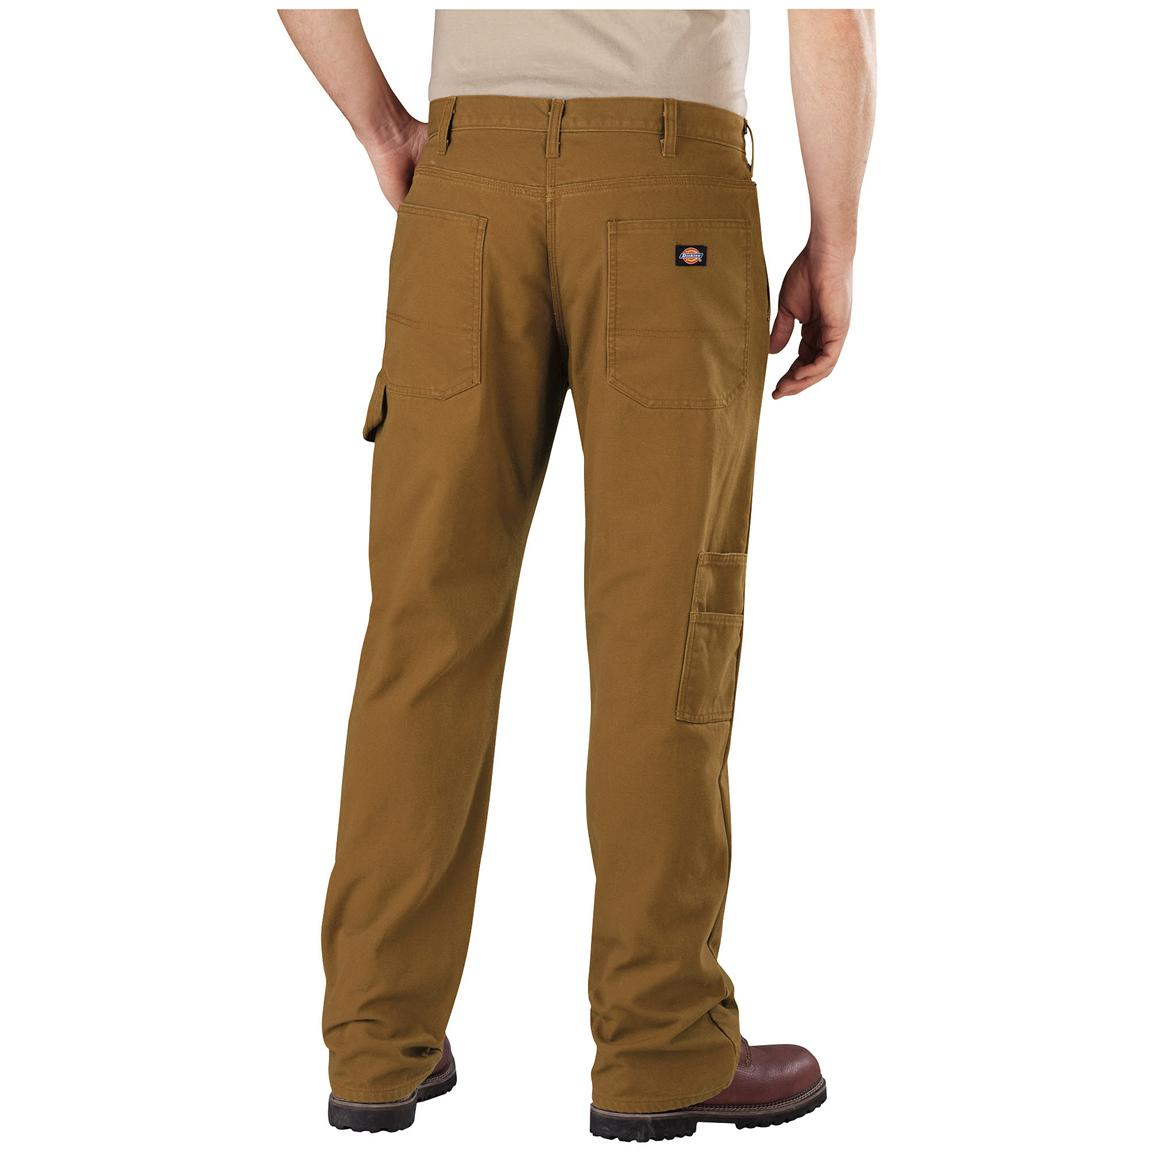 Men's Dickies Relaxed Straight Fit Flannel-lined Carpenter Jeans, Brown Duck - Back